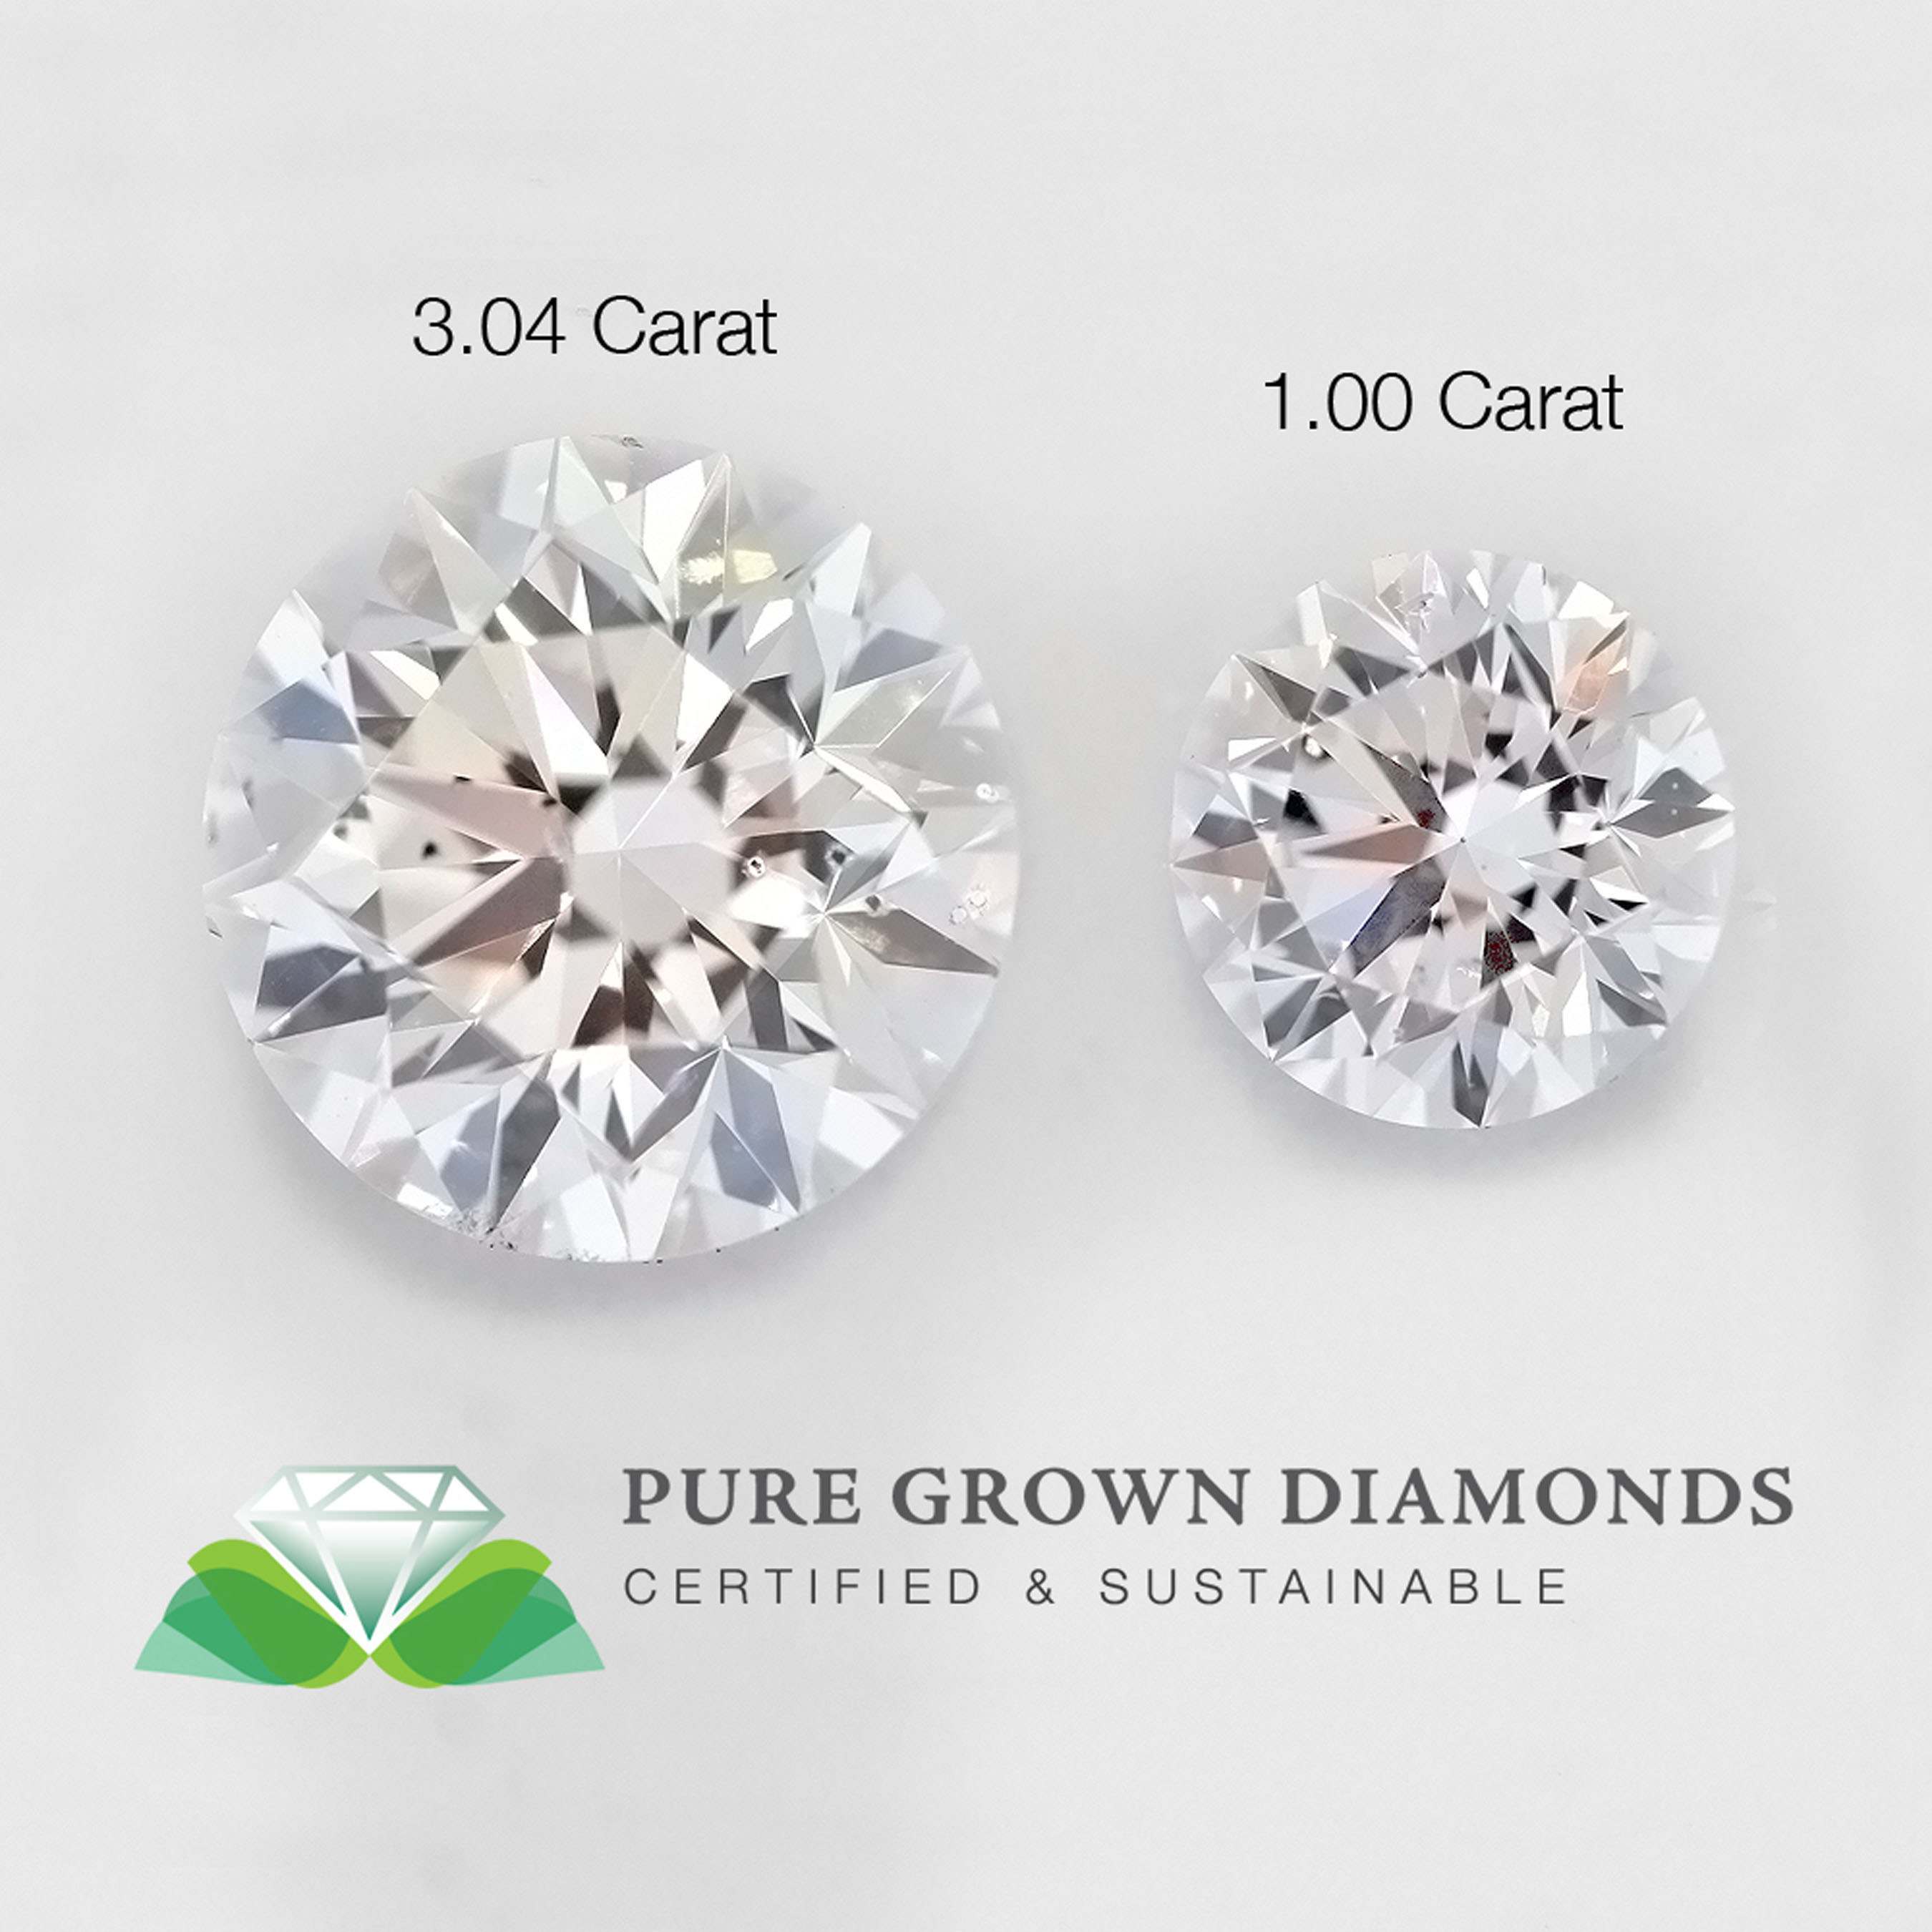 Diamond Comparison Pure Grown Diamonds